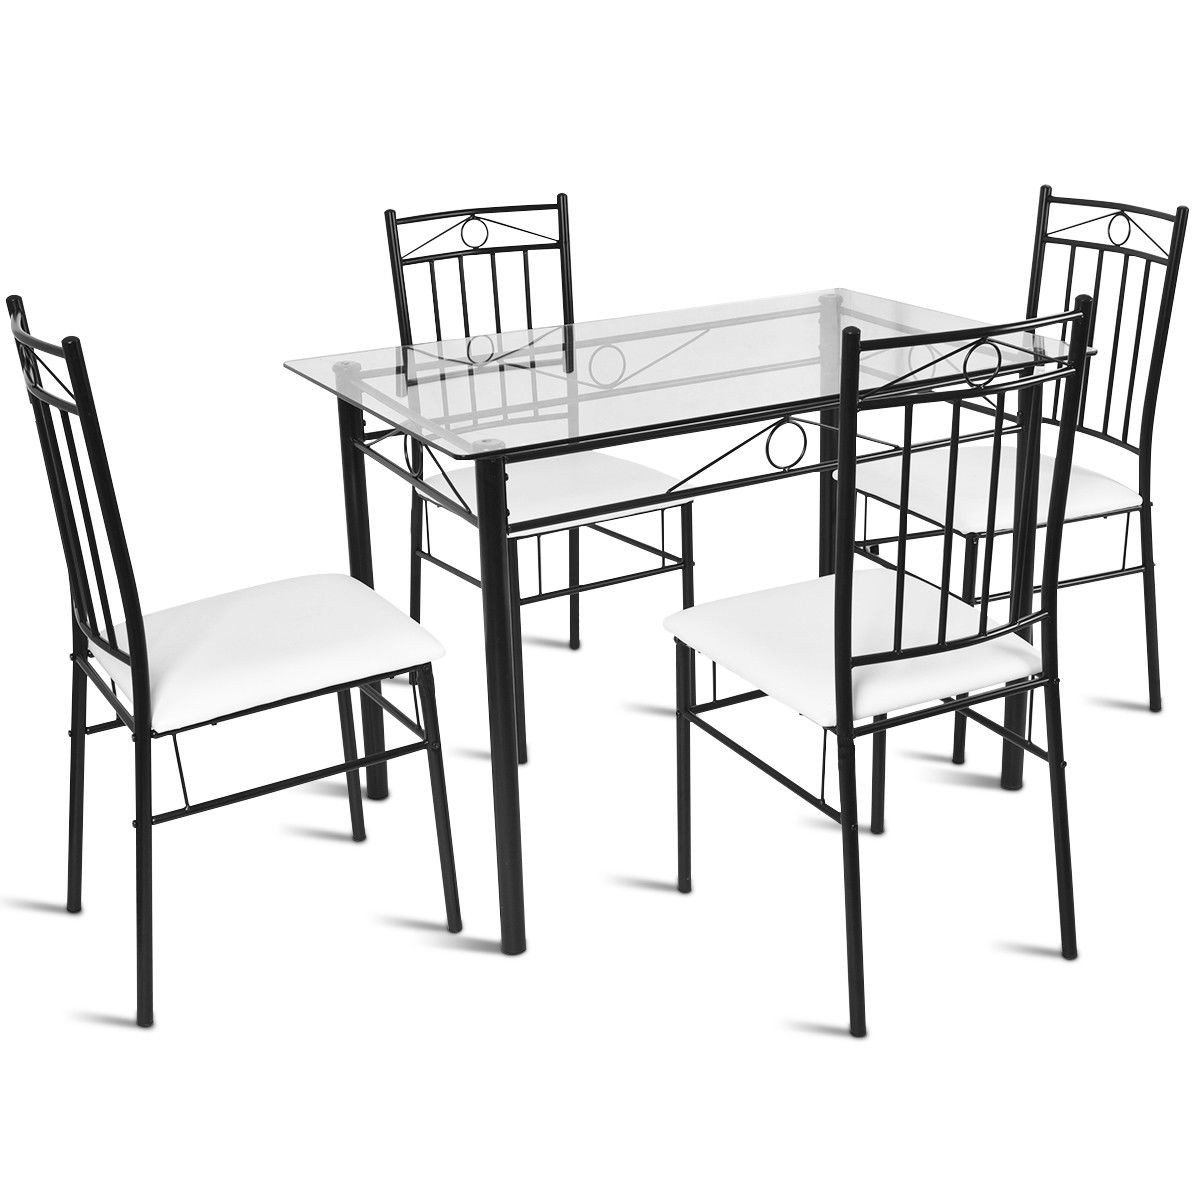 5 Pcs Tempered Glass Tabletop Dining Set Dining Room Furniture